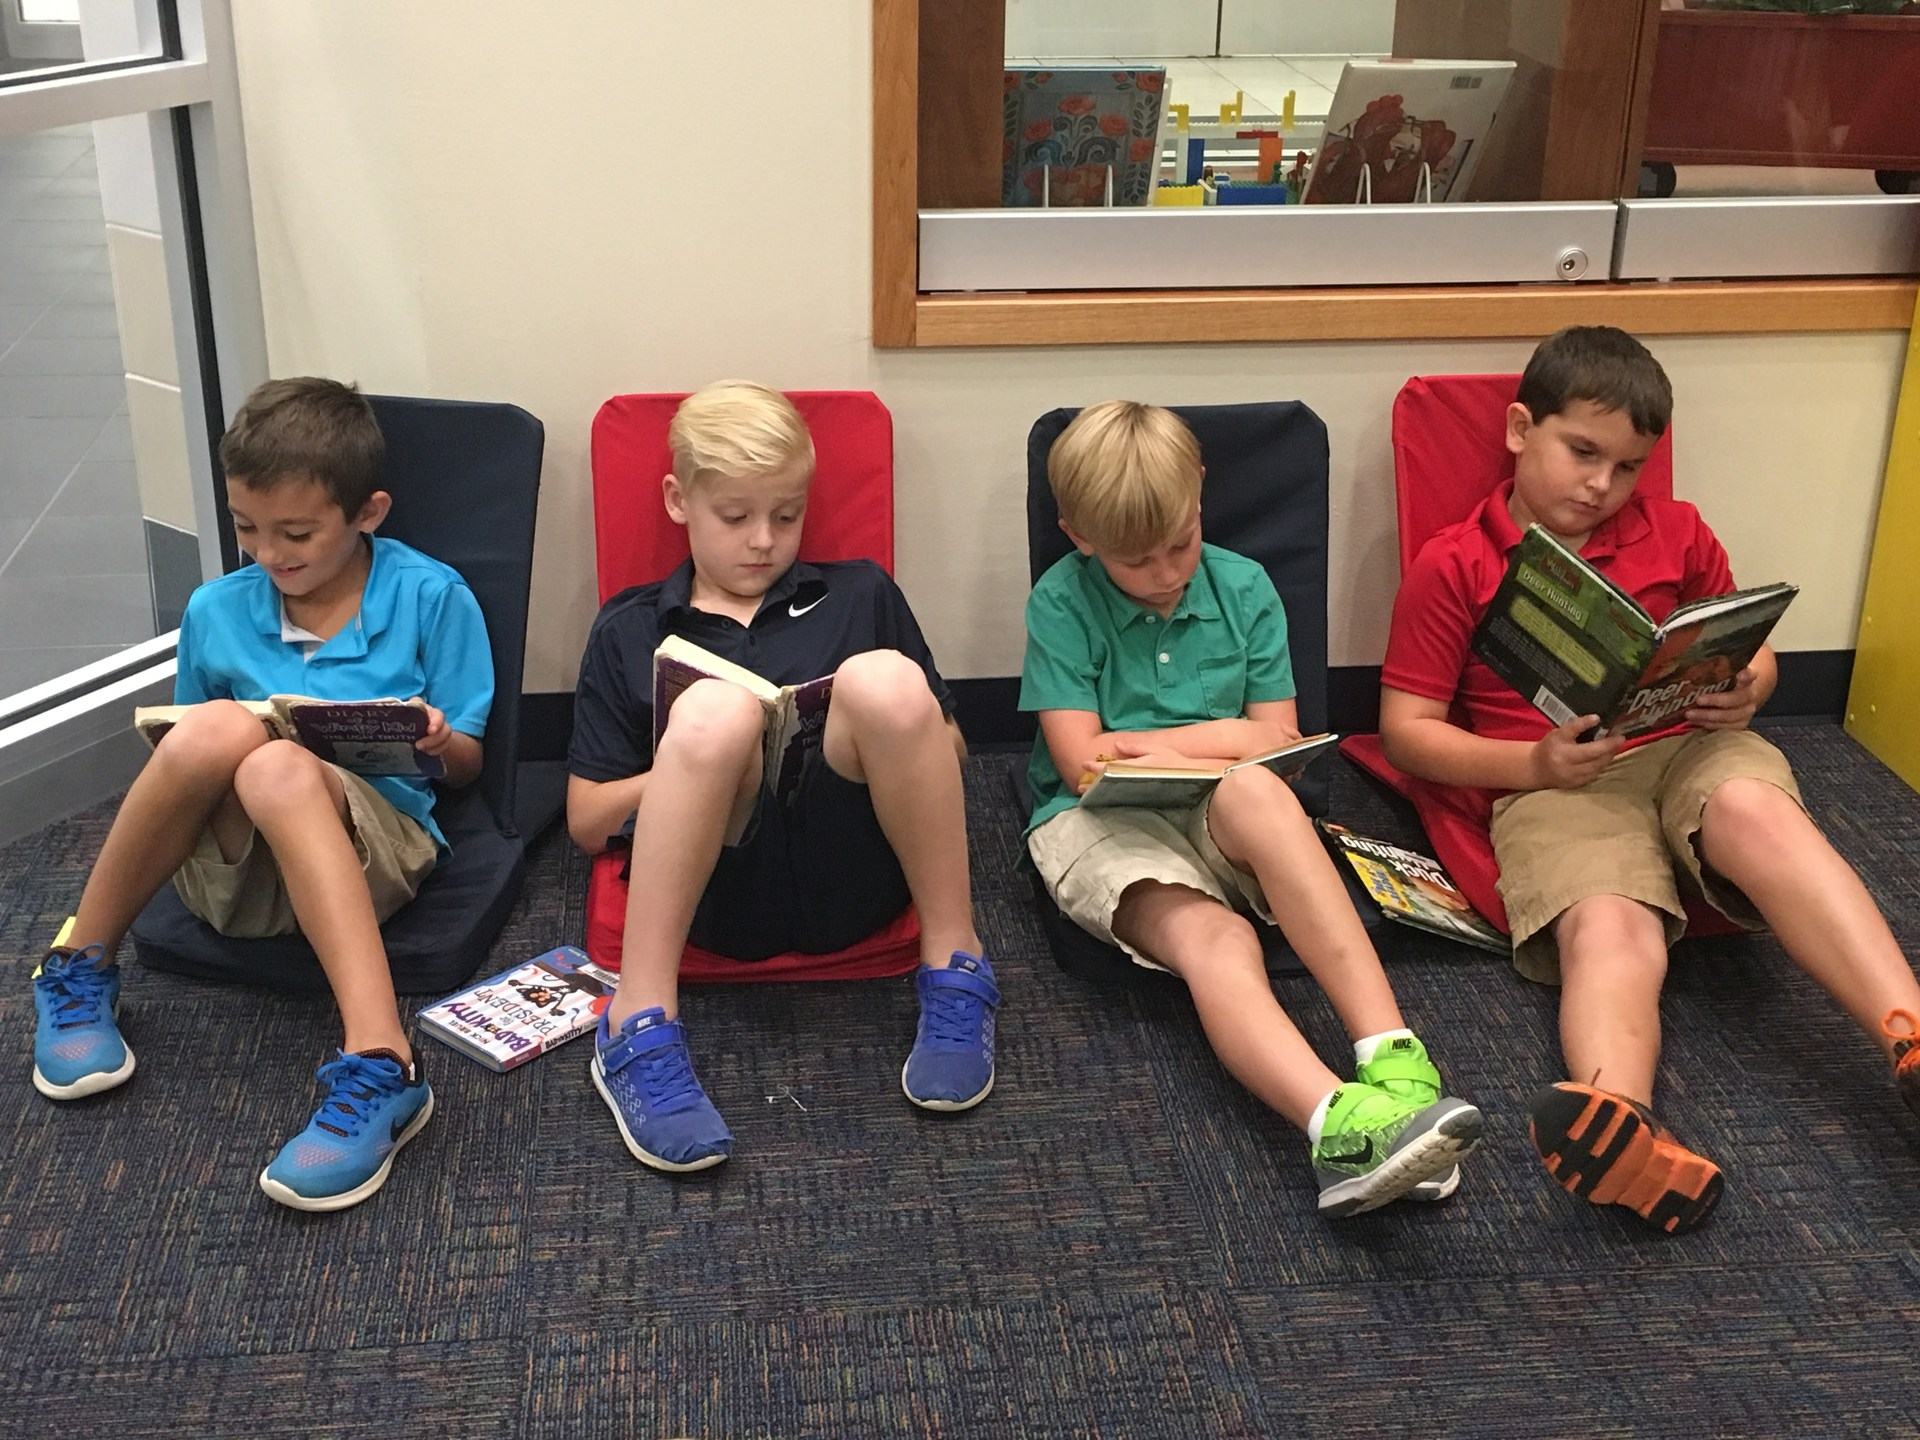 Reading taking place at the library.